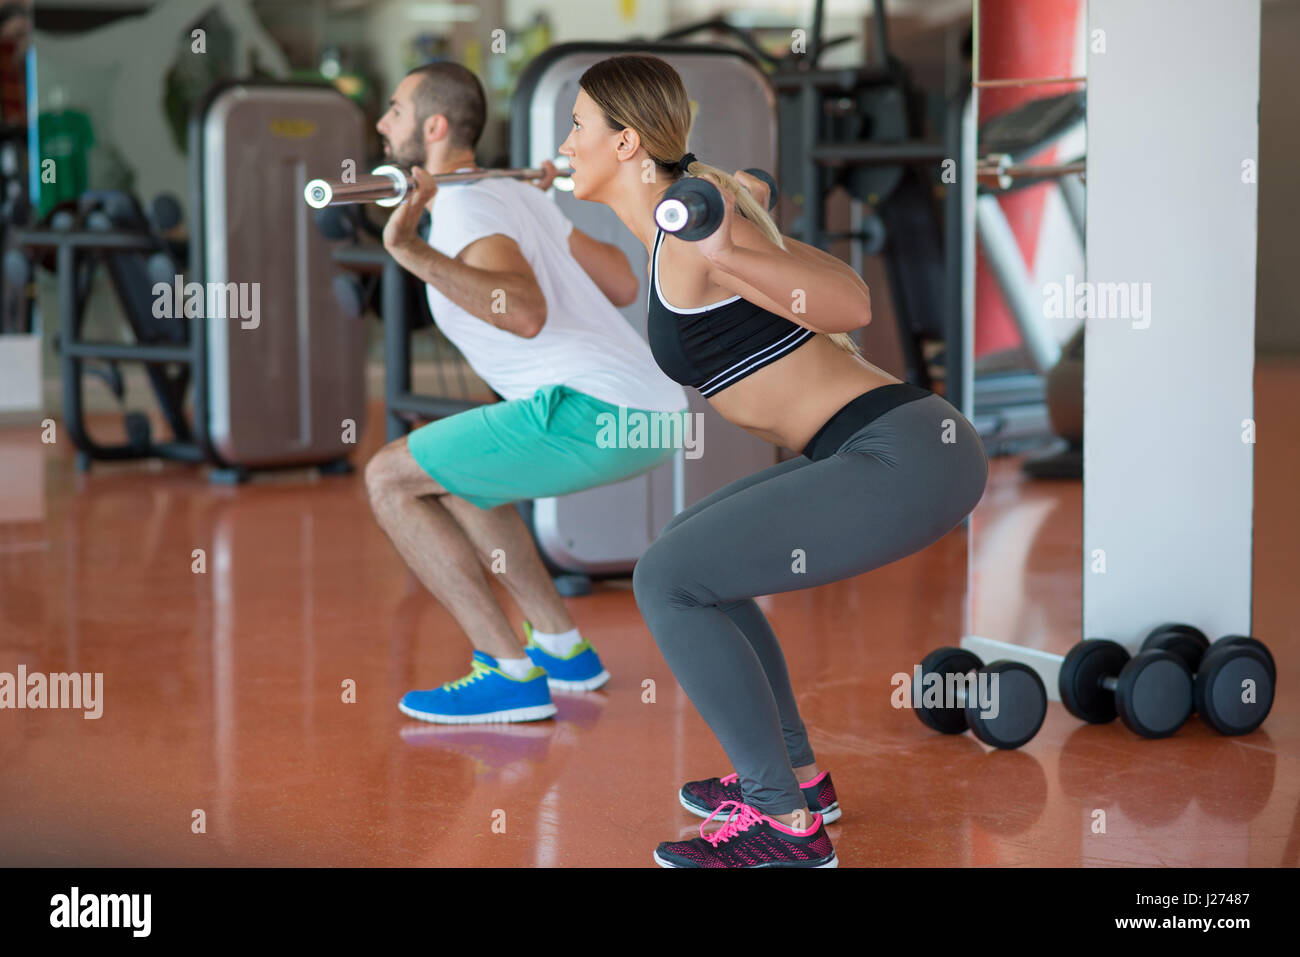 Young man and woman flexing muscles de l'épaule et appuyez sur squat in gym Photo Stock